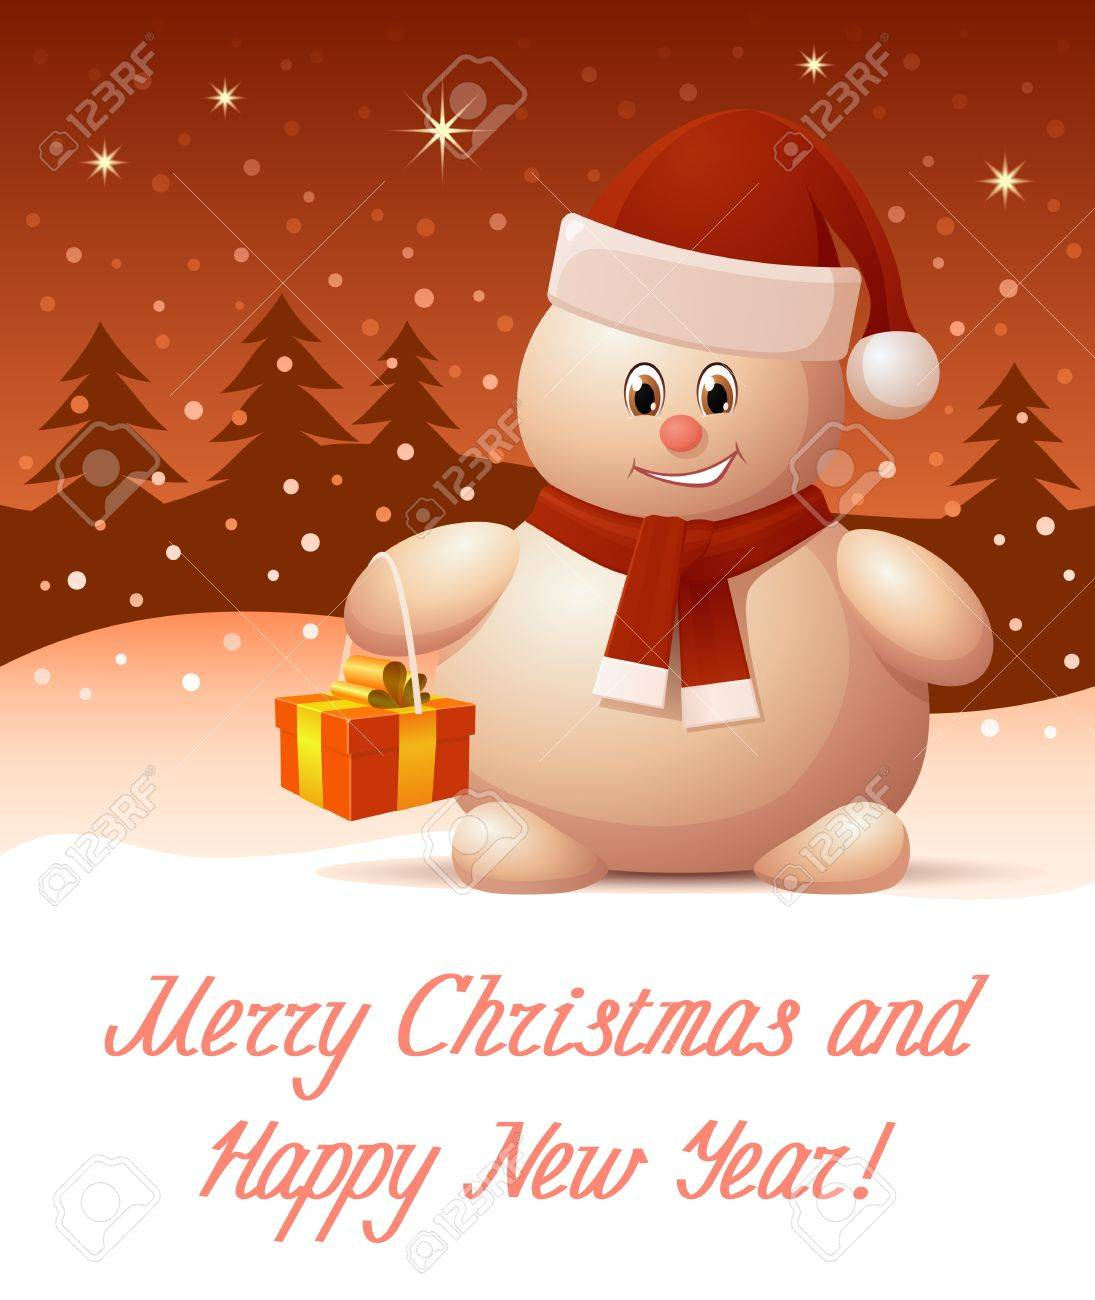 merry christmas and happy new year greeting card stock vector 11512979